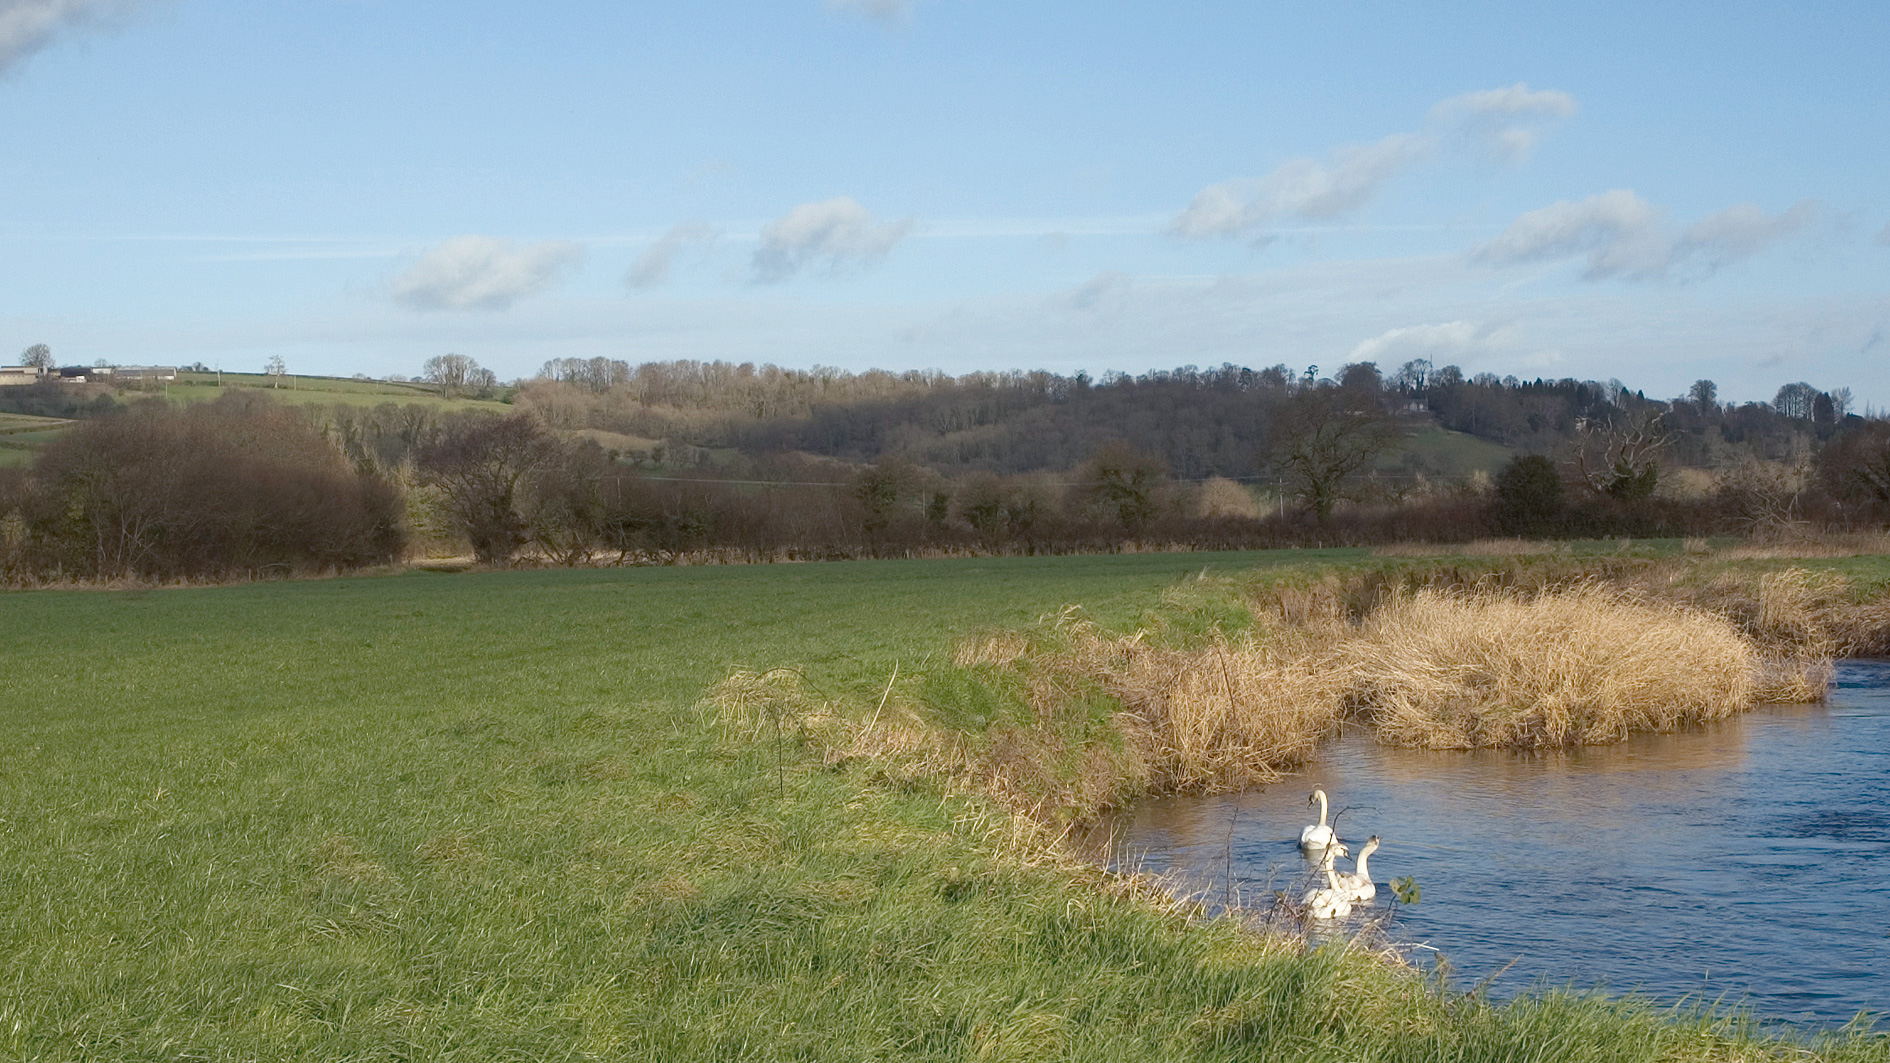 Land for sale next to river in Axminster